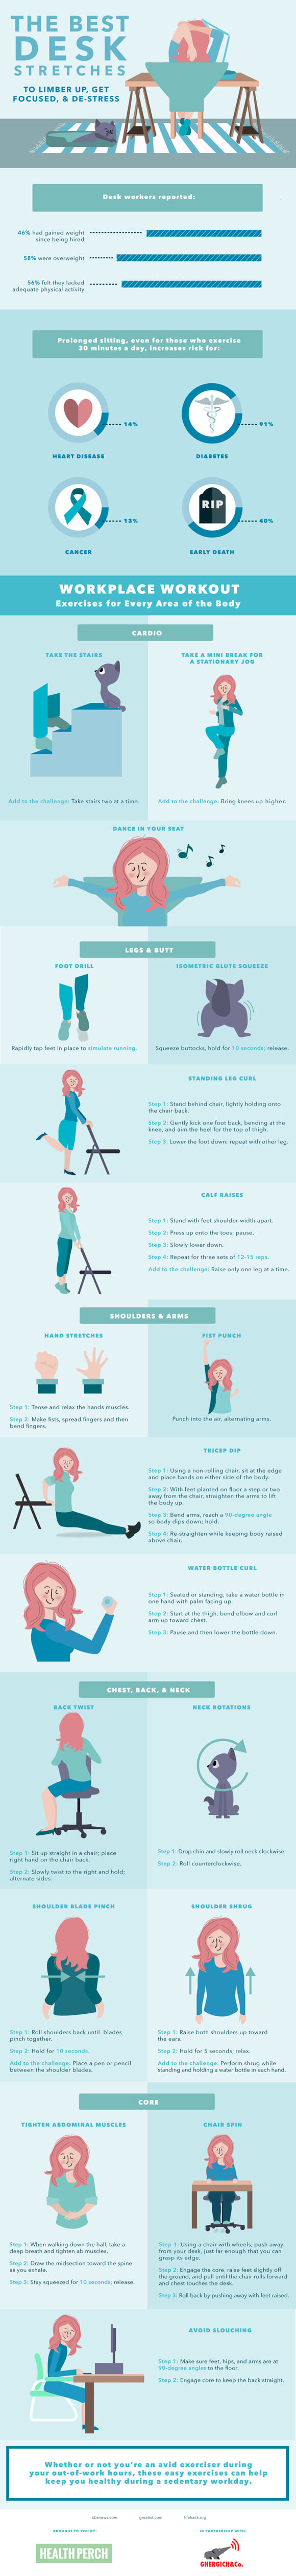 ds-desk-stretches-final